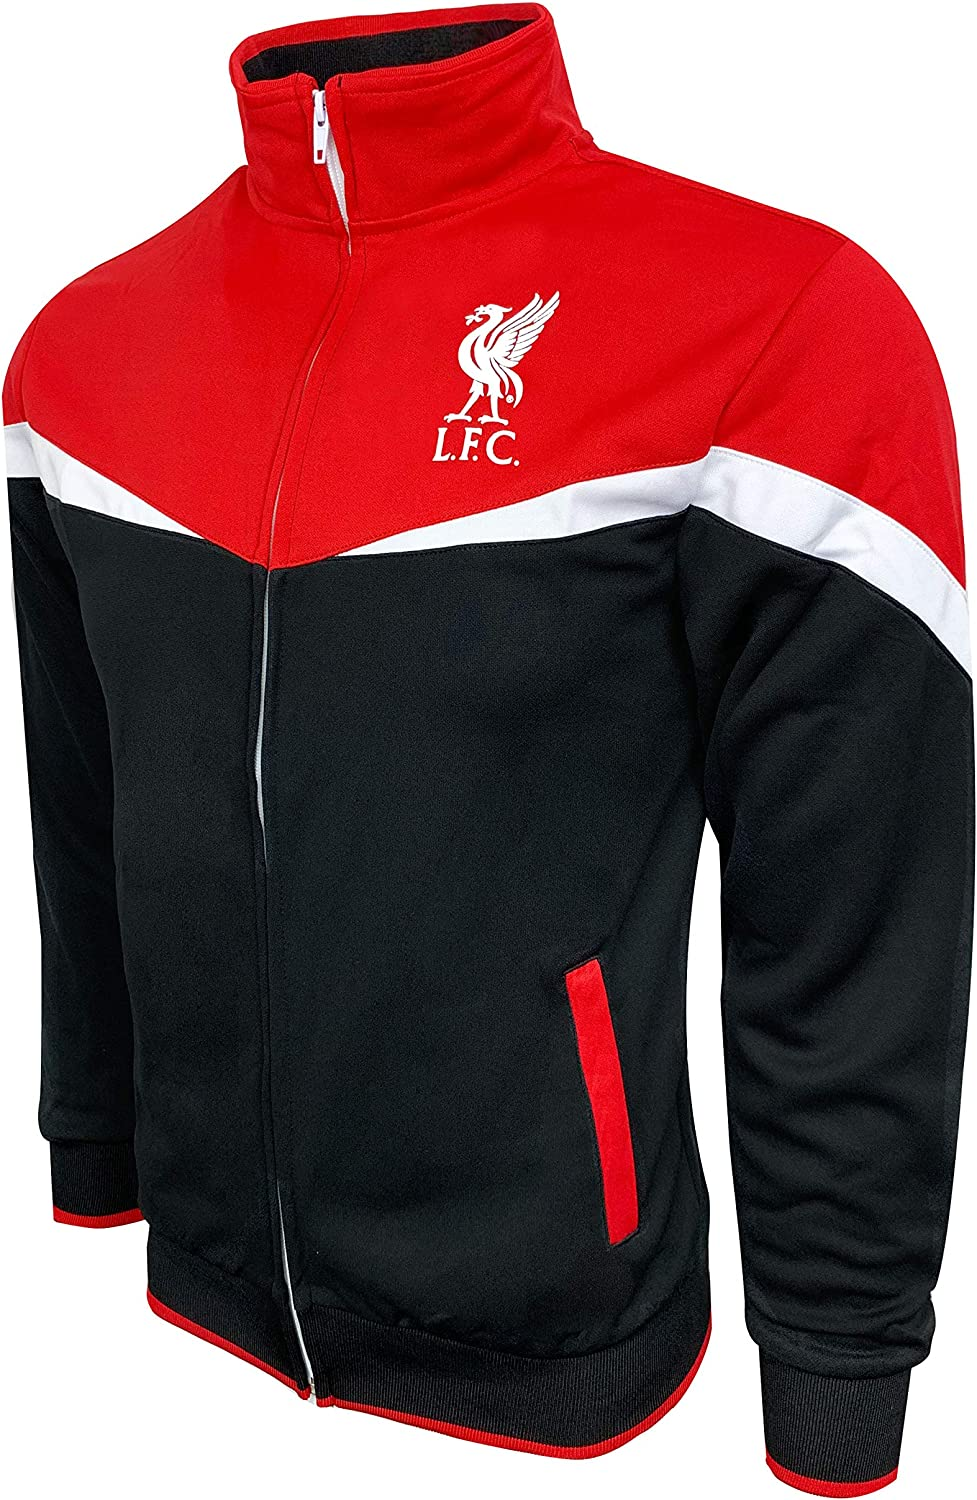 Icon Sports Liverpool FC Track Jacket For Boys And Adults